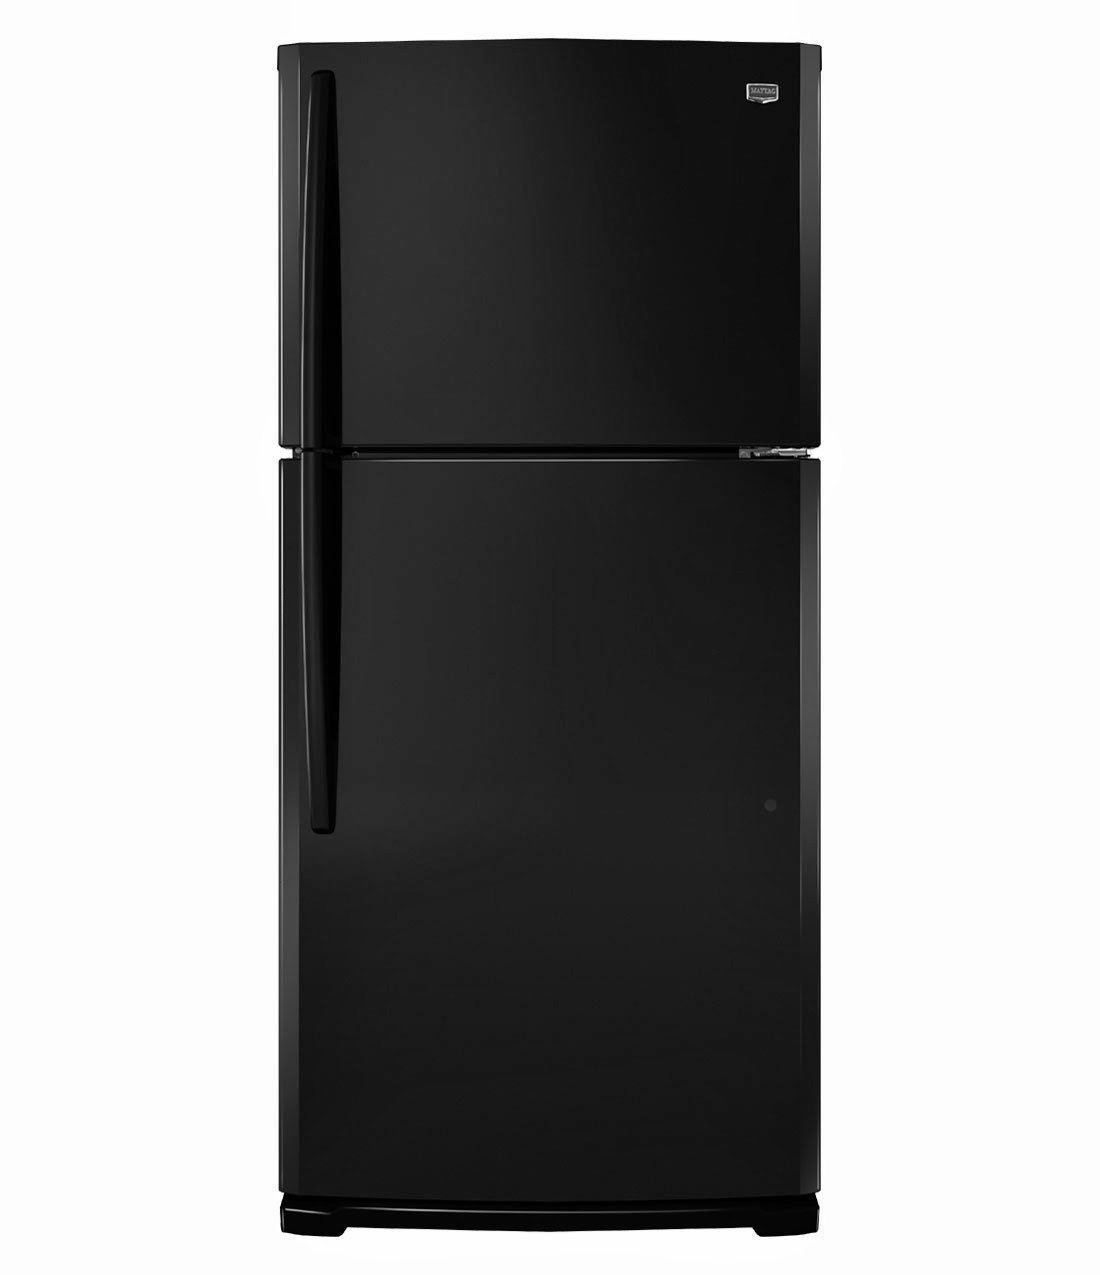 Online Shop That Sell Maytag Refrigerator Maytag Top